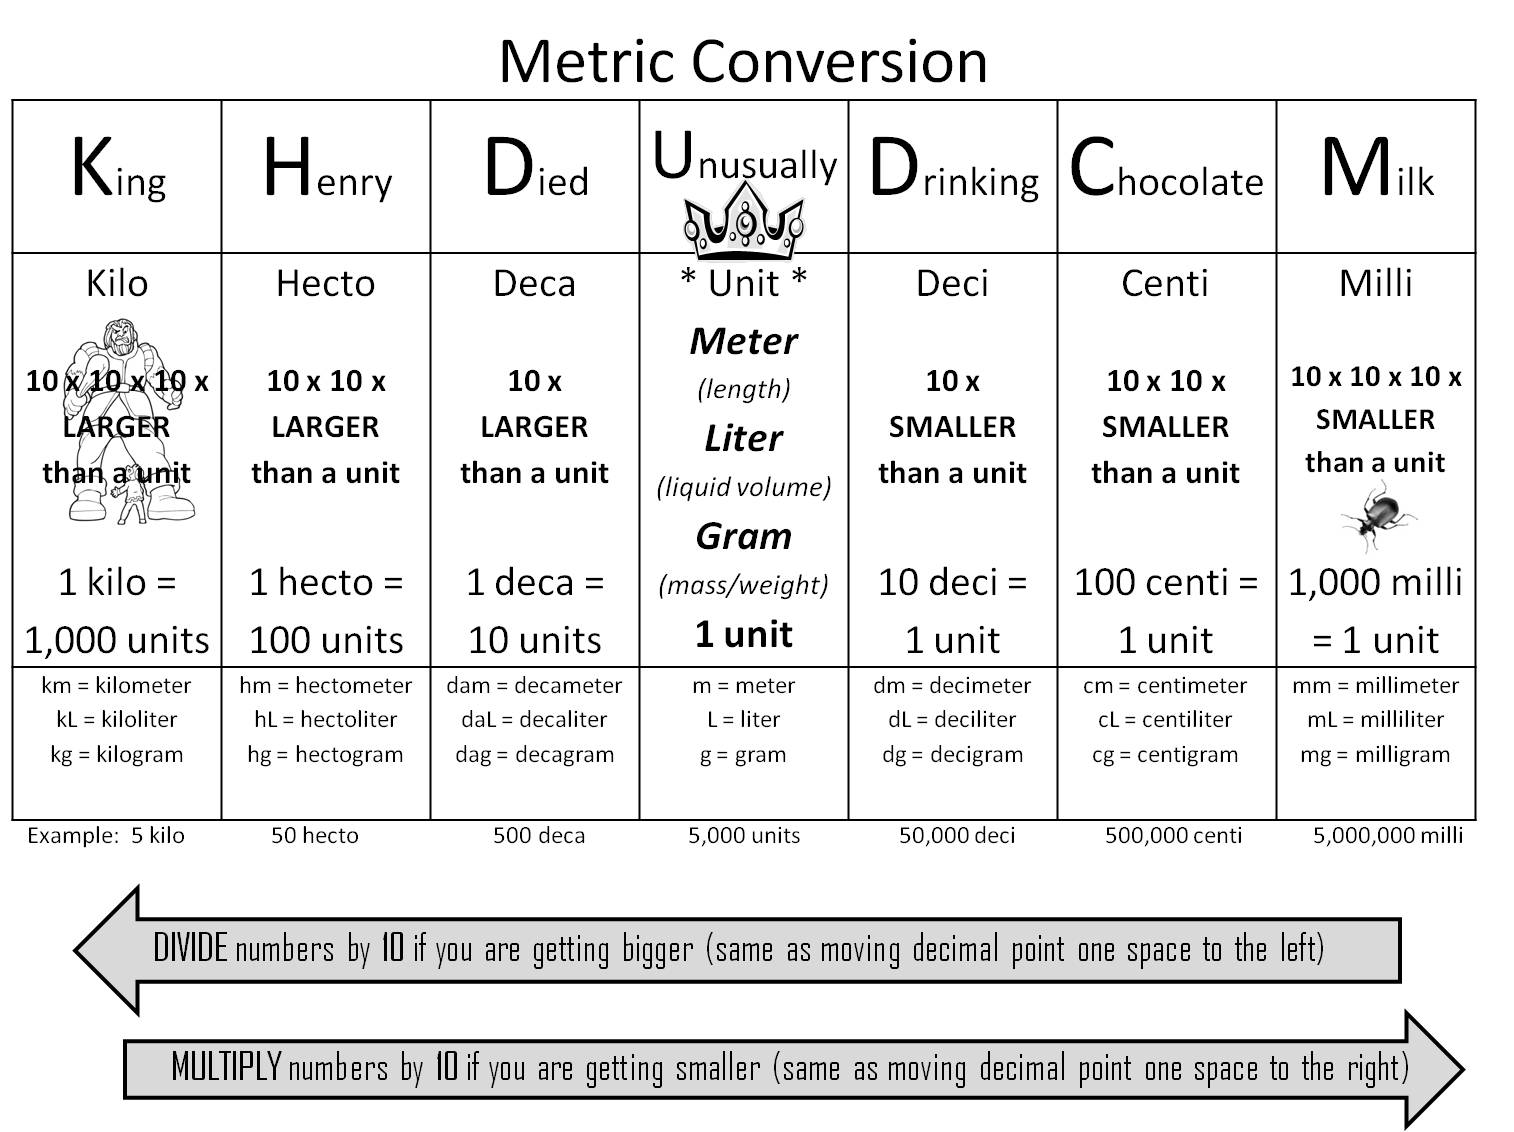 Rigby conversion chart choice image free any chart examples rigby conversion chart choice image free any chart examples rigby conversion chart gallery free any chart nvjuhfo Gallery